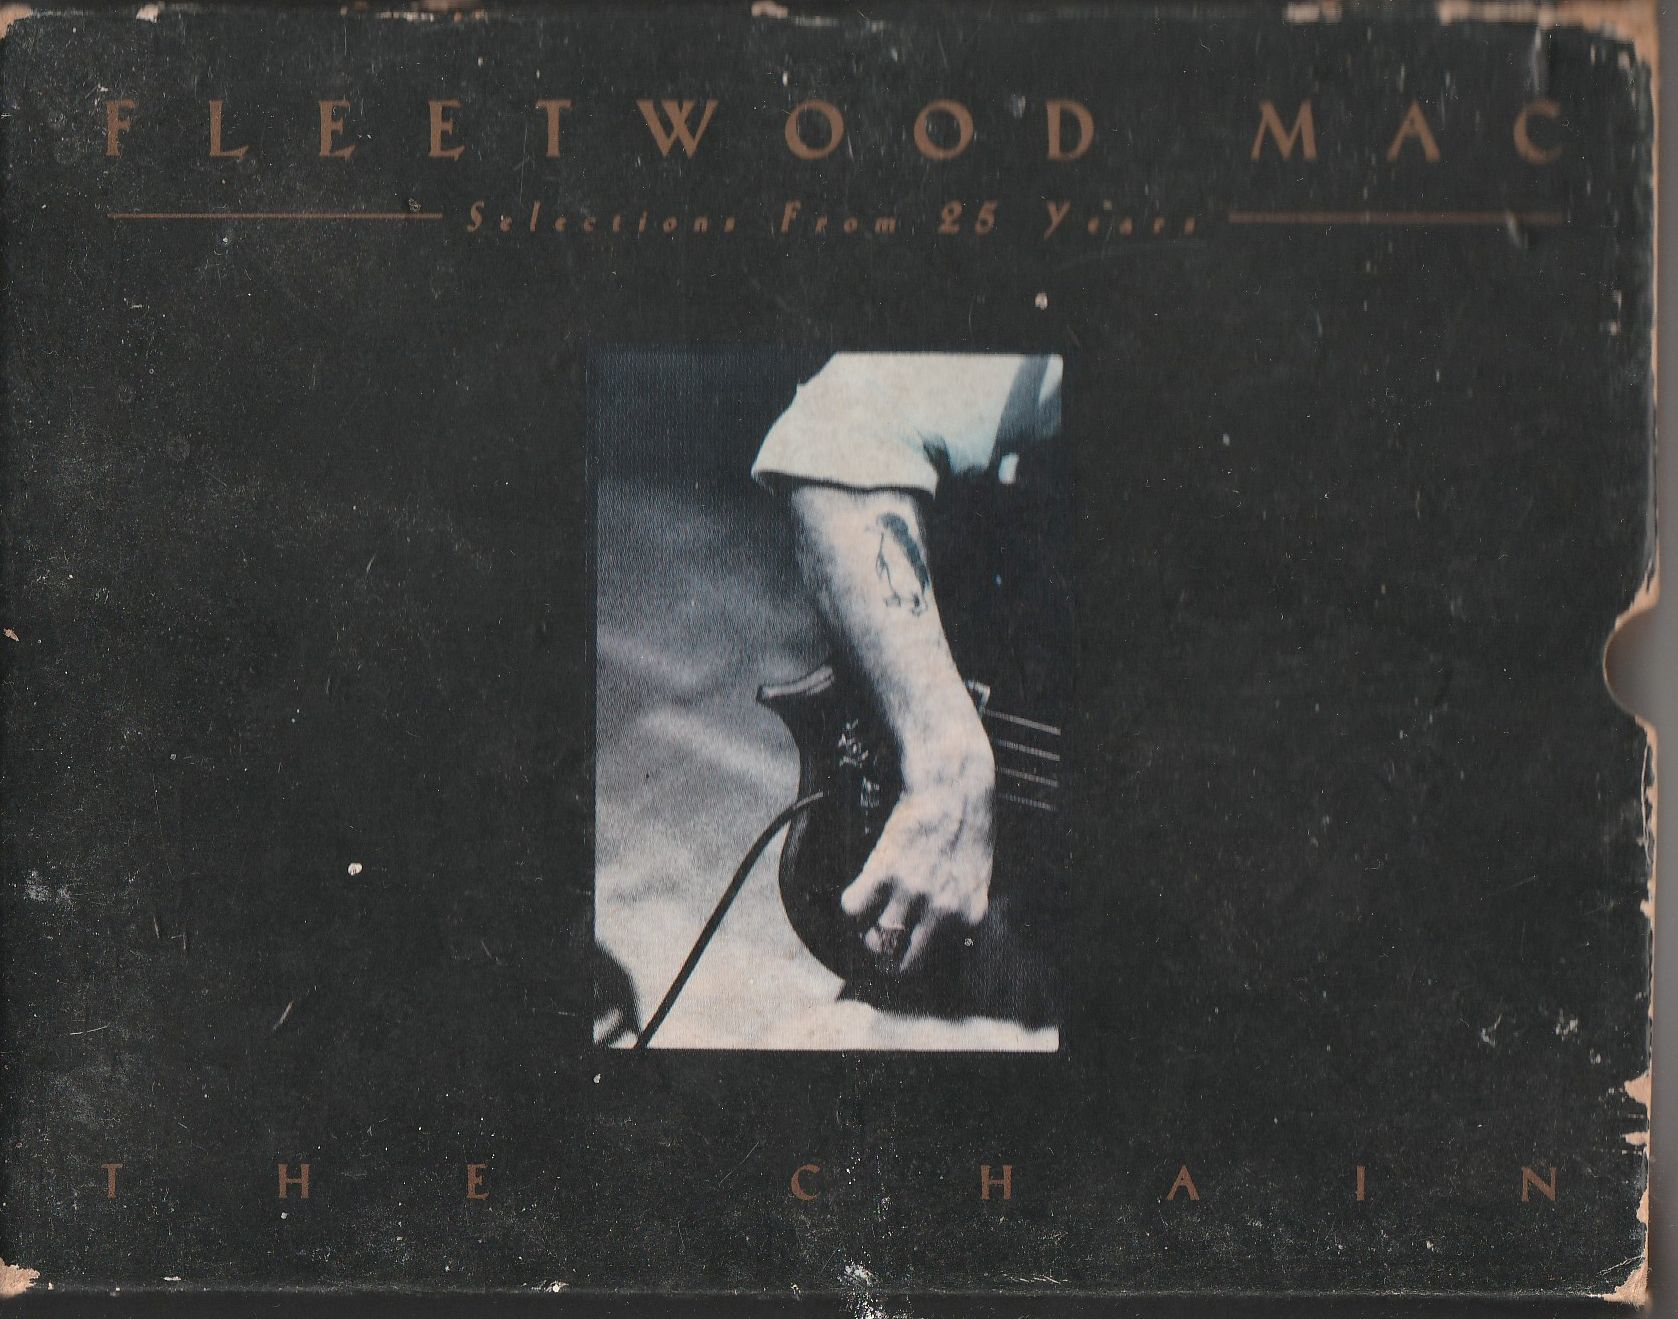 FLEETWOOD MAC Selections From 25 Years The Chain 2-CASSETTE.jpg